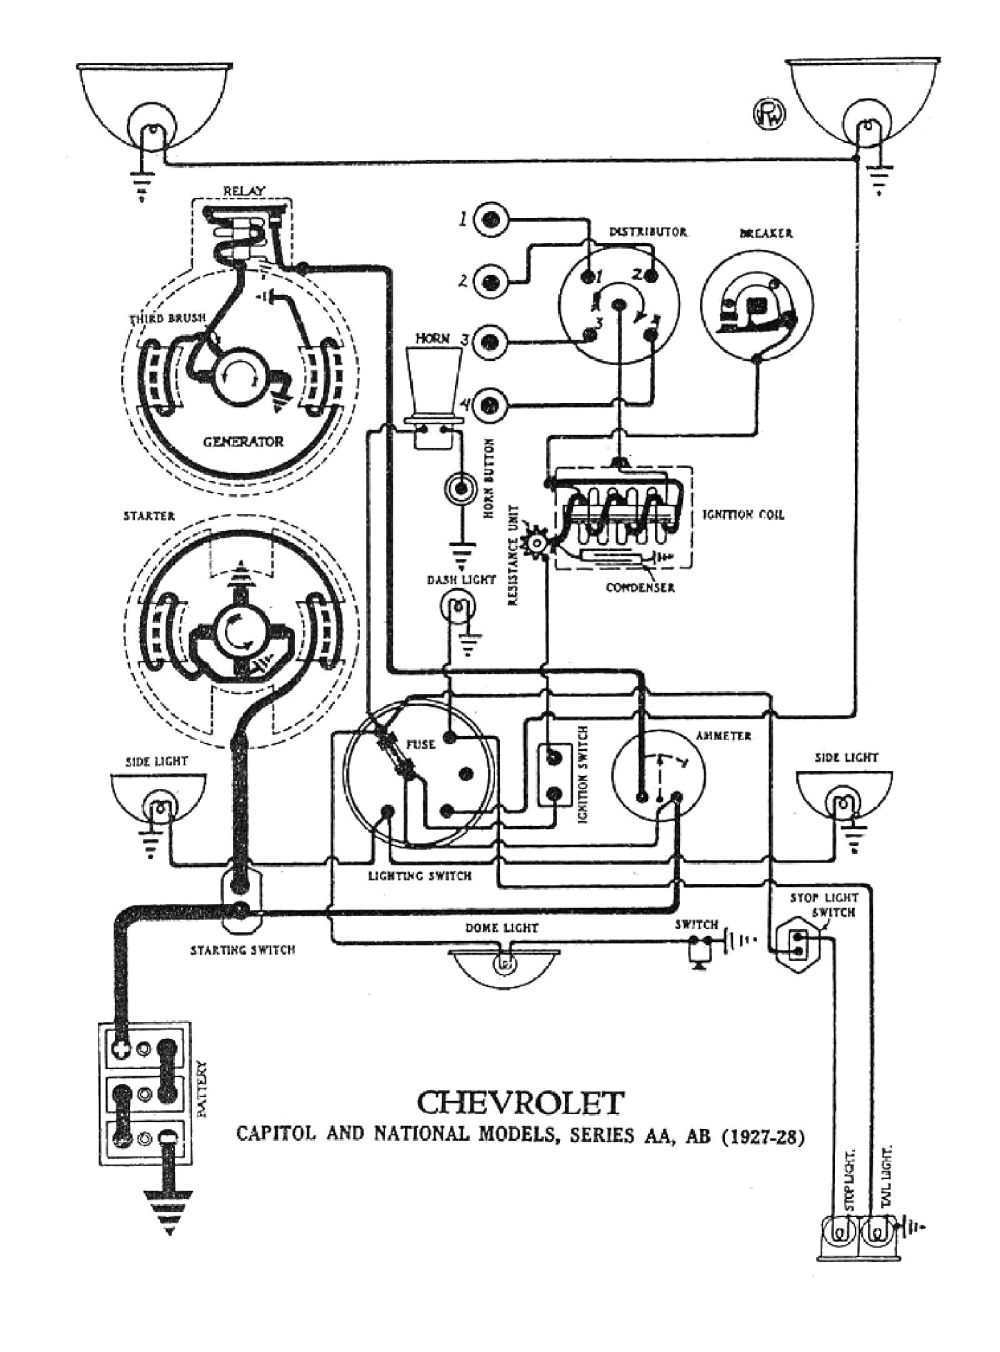 medium resolution of 1946 international harvester truck wiring harness wiring diagram 1946 international harvester truck wiring harness